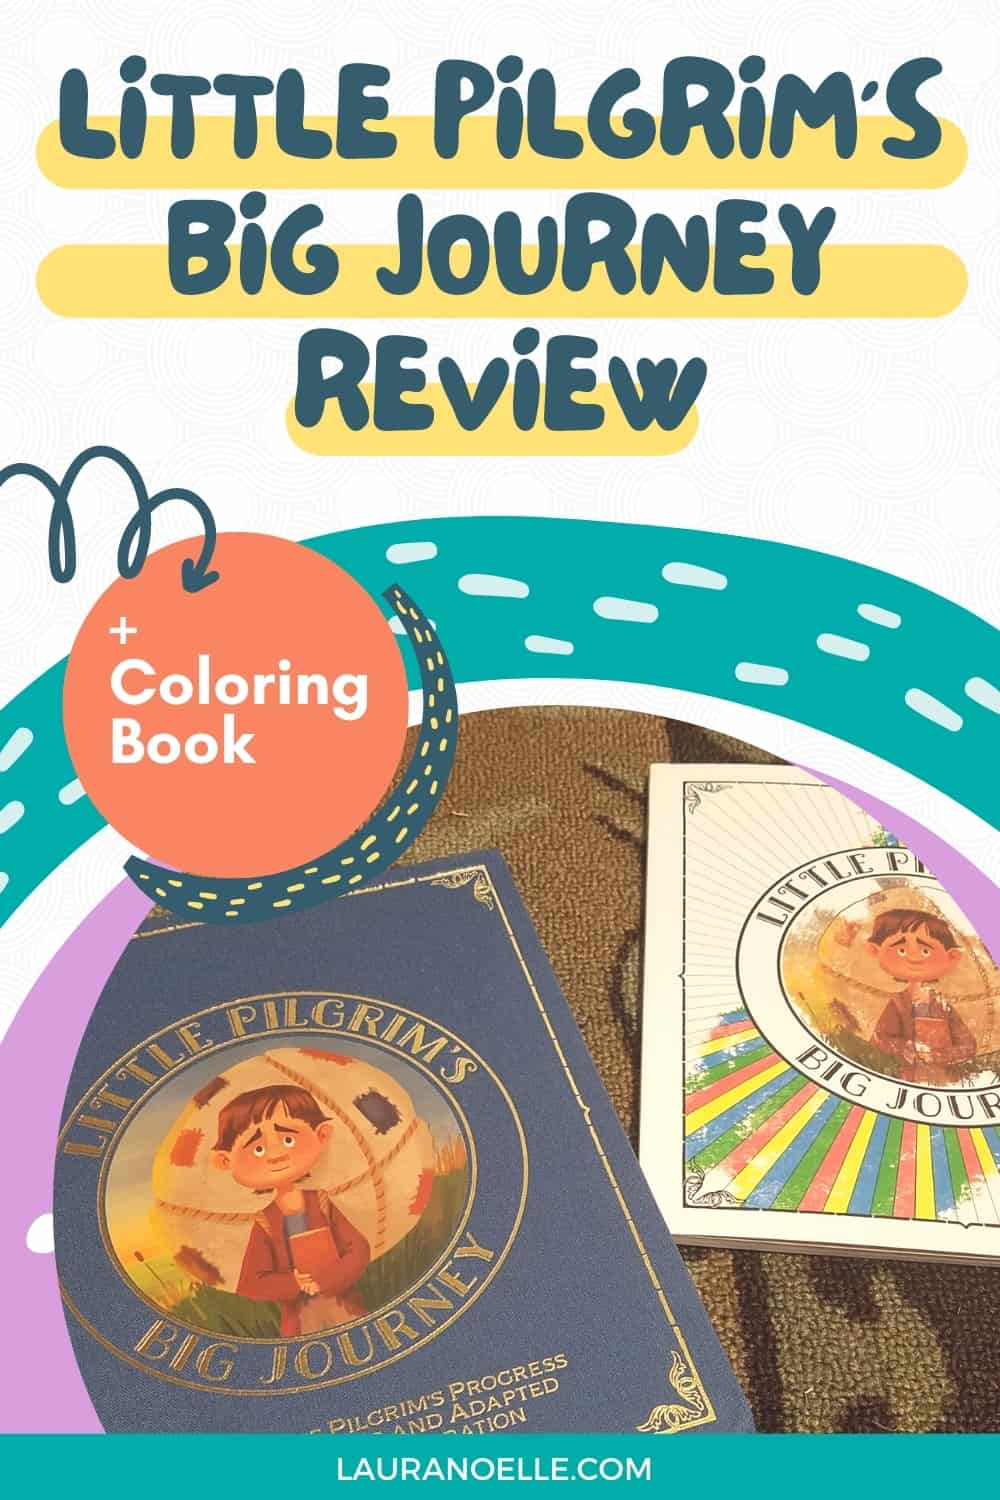 Introduce your children to Pilgrim's Progress with a beautifully illustrated adaptation made especially for little ones. Here's what we thought.